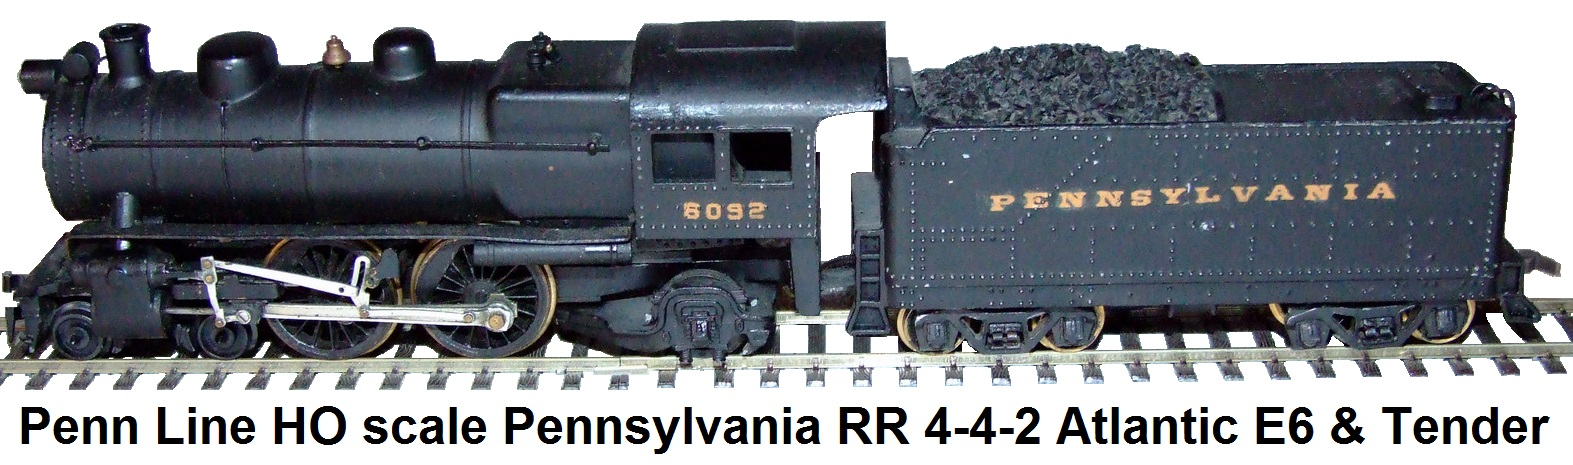 Penn Line HO scale Pennsylvania RR 4-4-2 Atlantic E6 Loco & Tender #6092